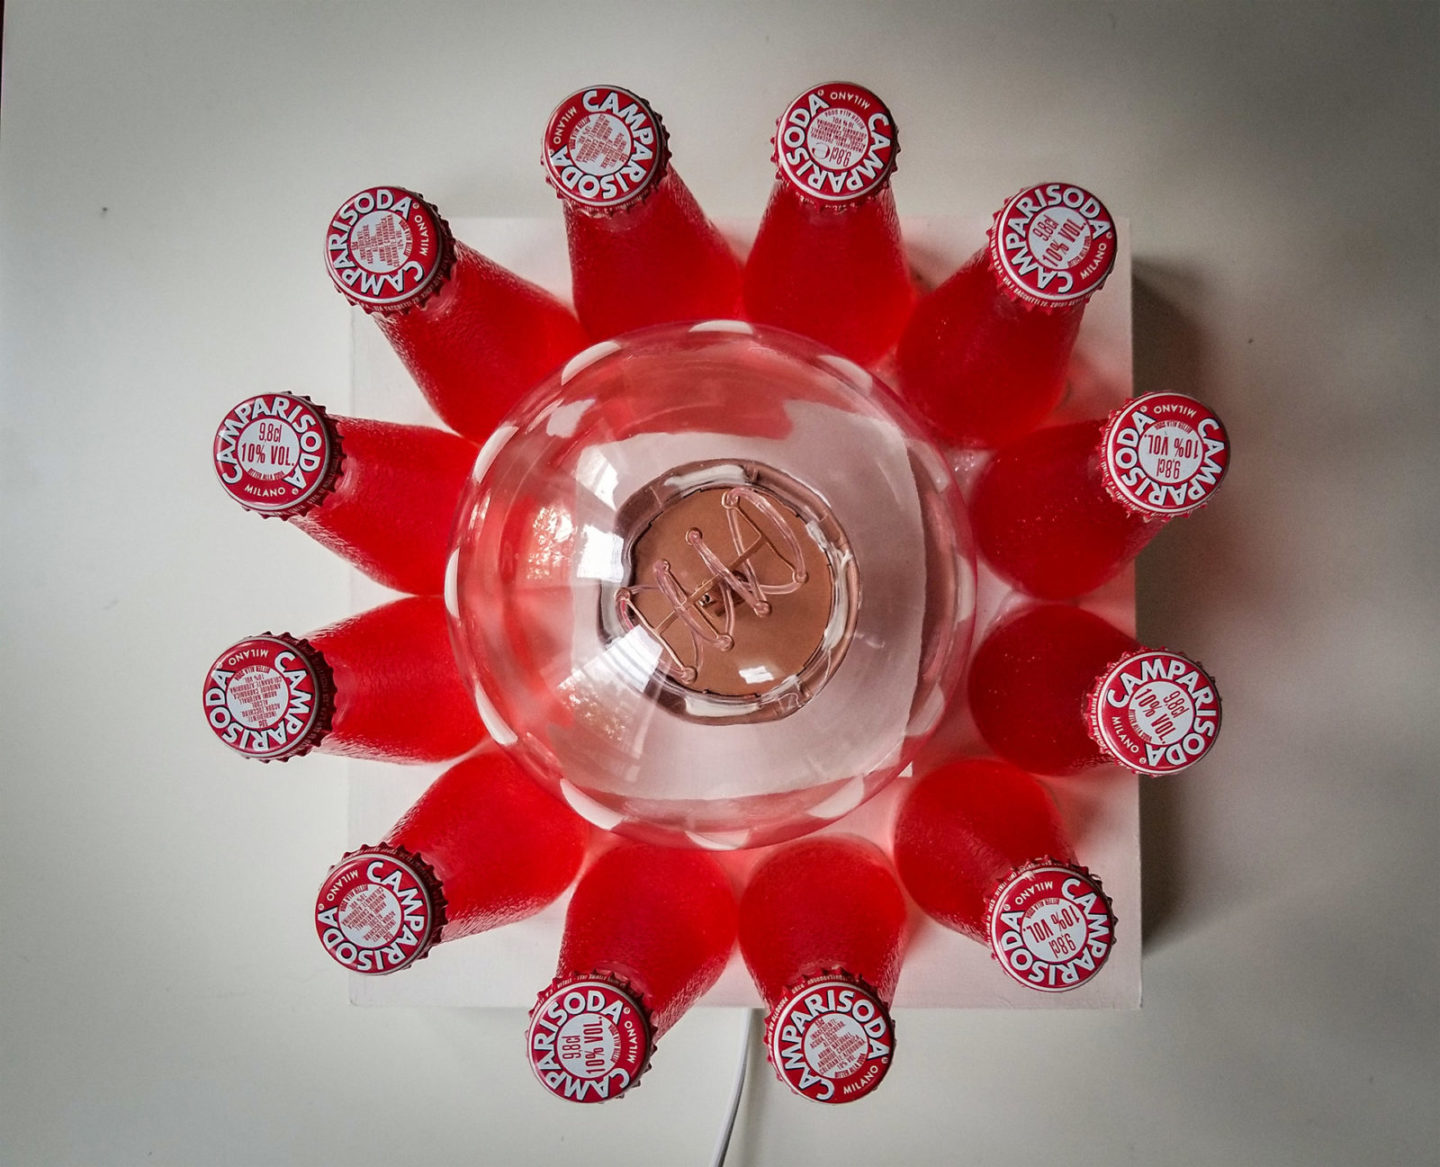 The Campari Soda Lamp